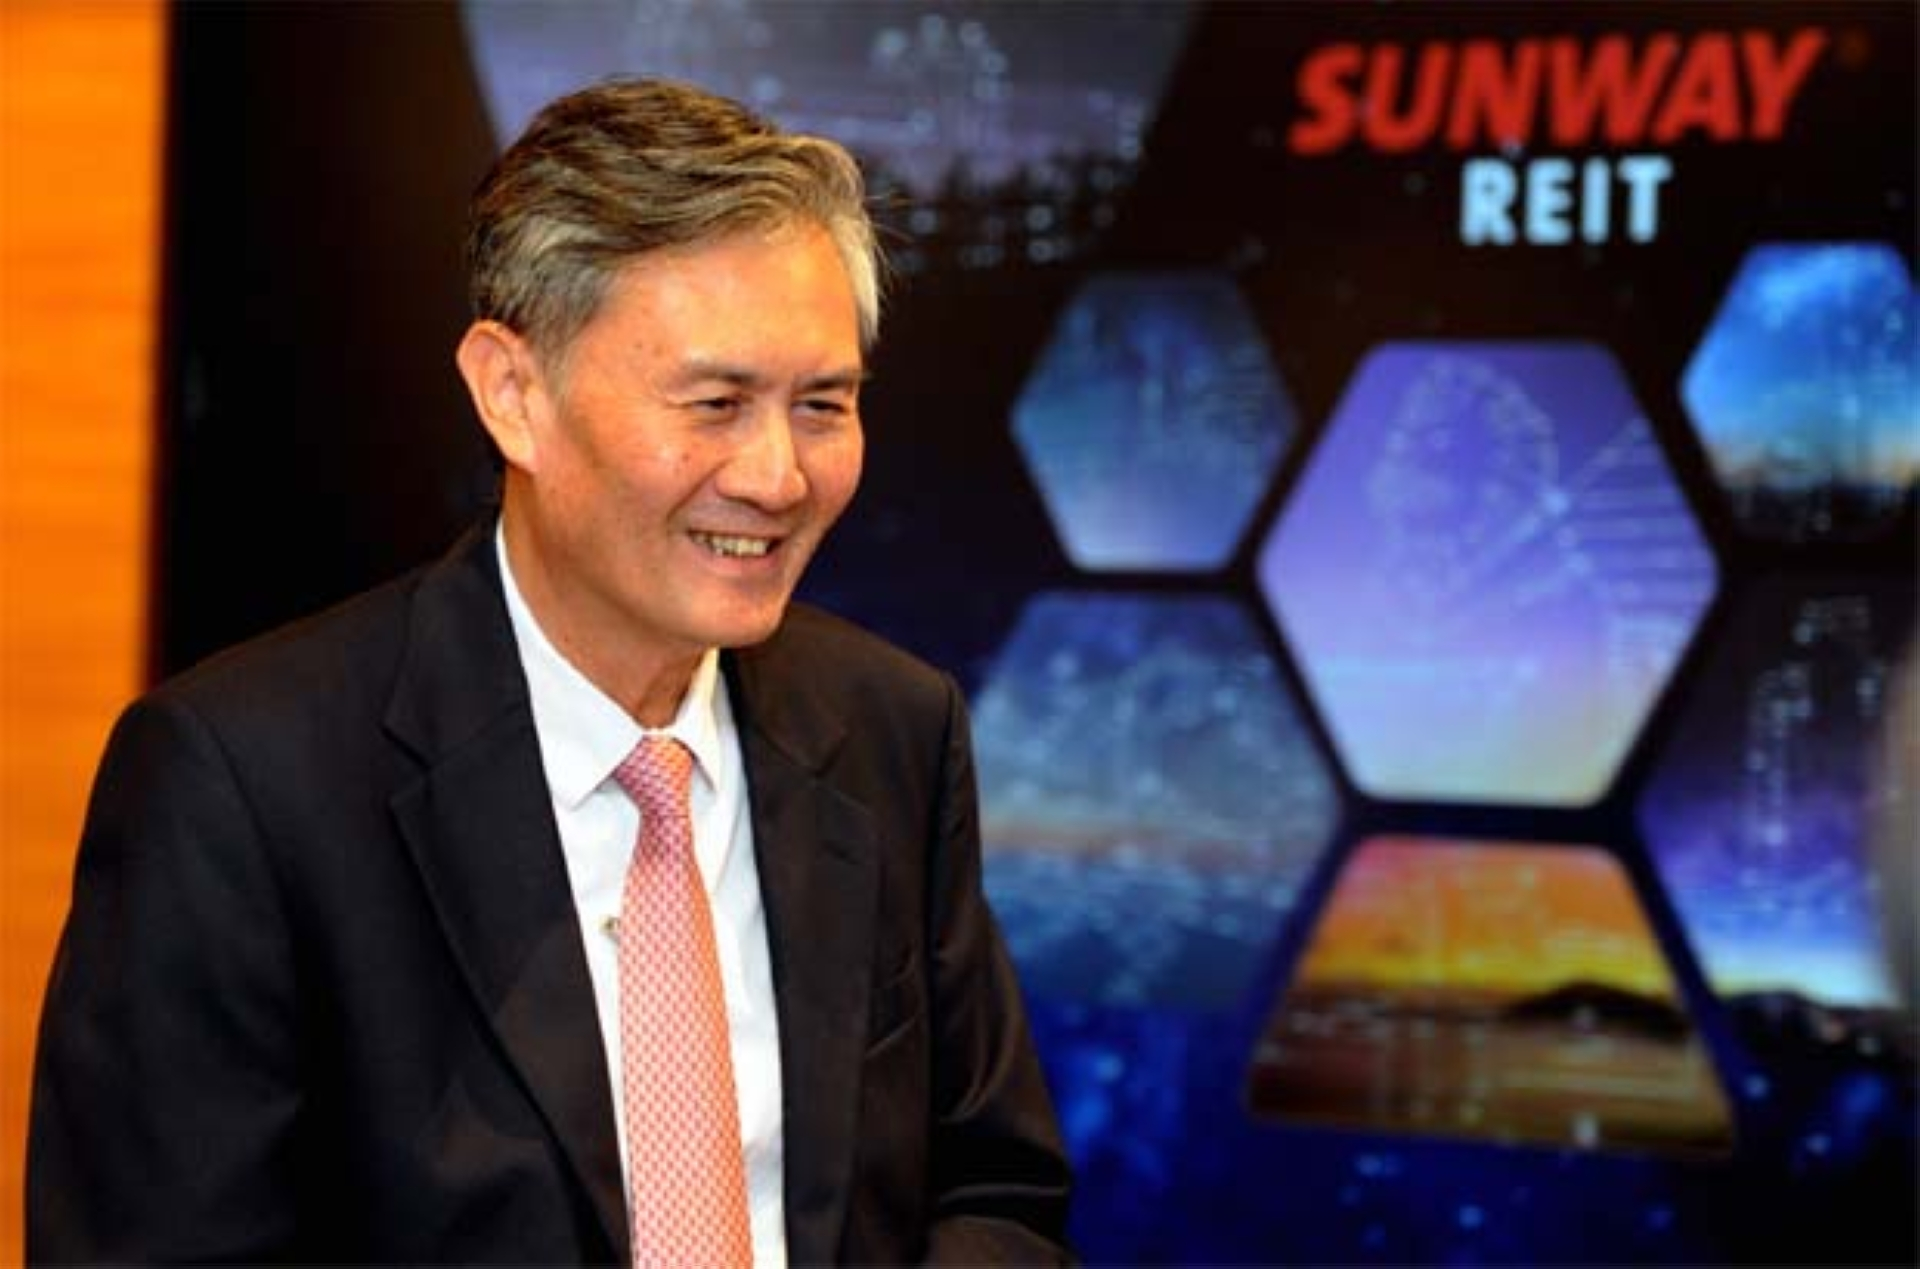 In a statement, Sunway REIT Management Sdn Bhd CEO Datuk Jeffrey Ng(pic) said SunREIT was expected to deliver sustainable DPU for financial year (FY) ending June 30,2020.